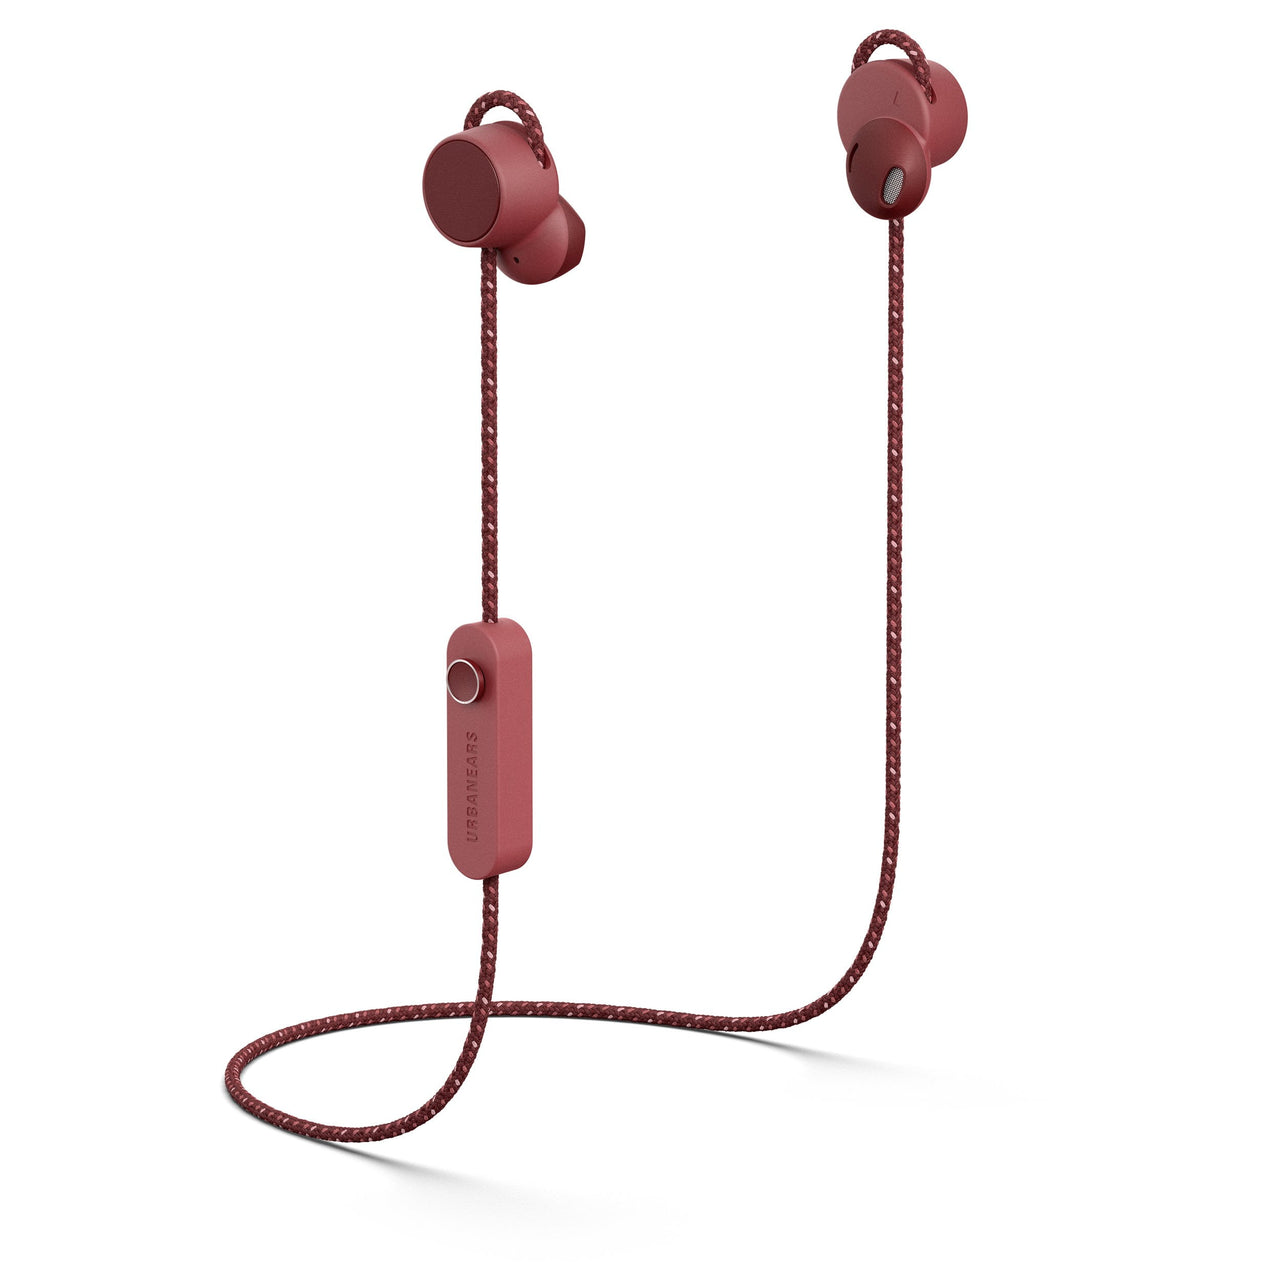 Jakan Bluetooth Earbuds - Mulberry Red, Headphones, Urbanears, ASH Asia